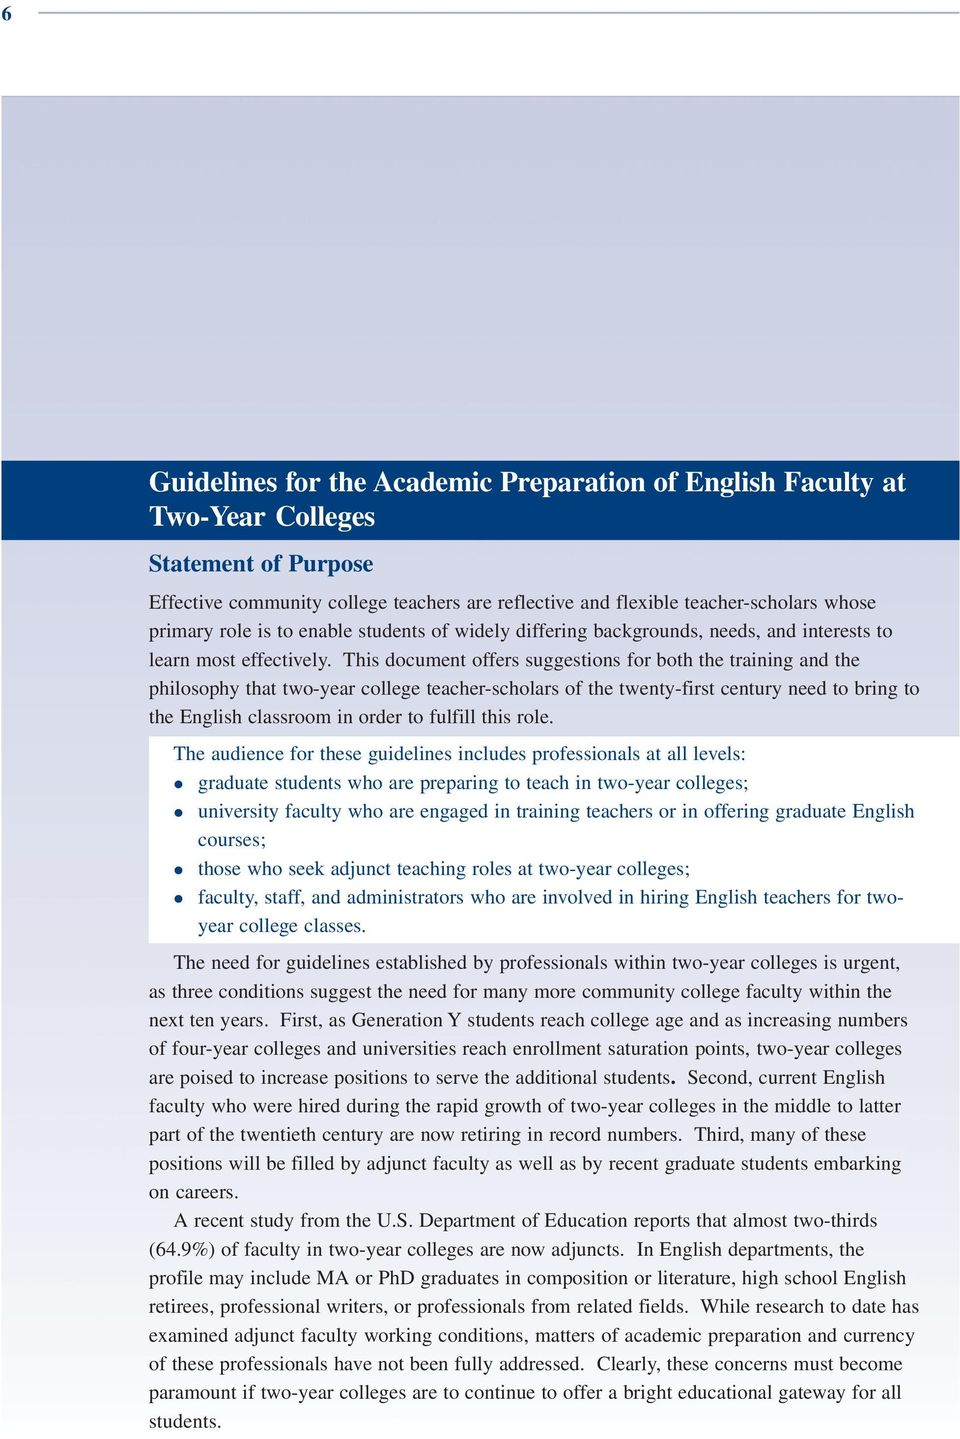 This document offers suggestions for both the training and the philosophy that two-year college teacher-scholars of the twenty-first century need to bring to the English classroom in order to fulfill